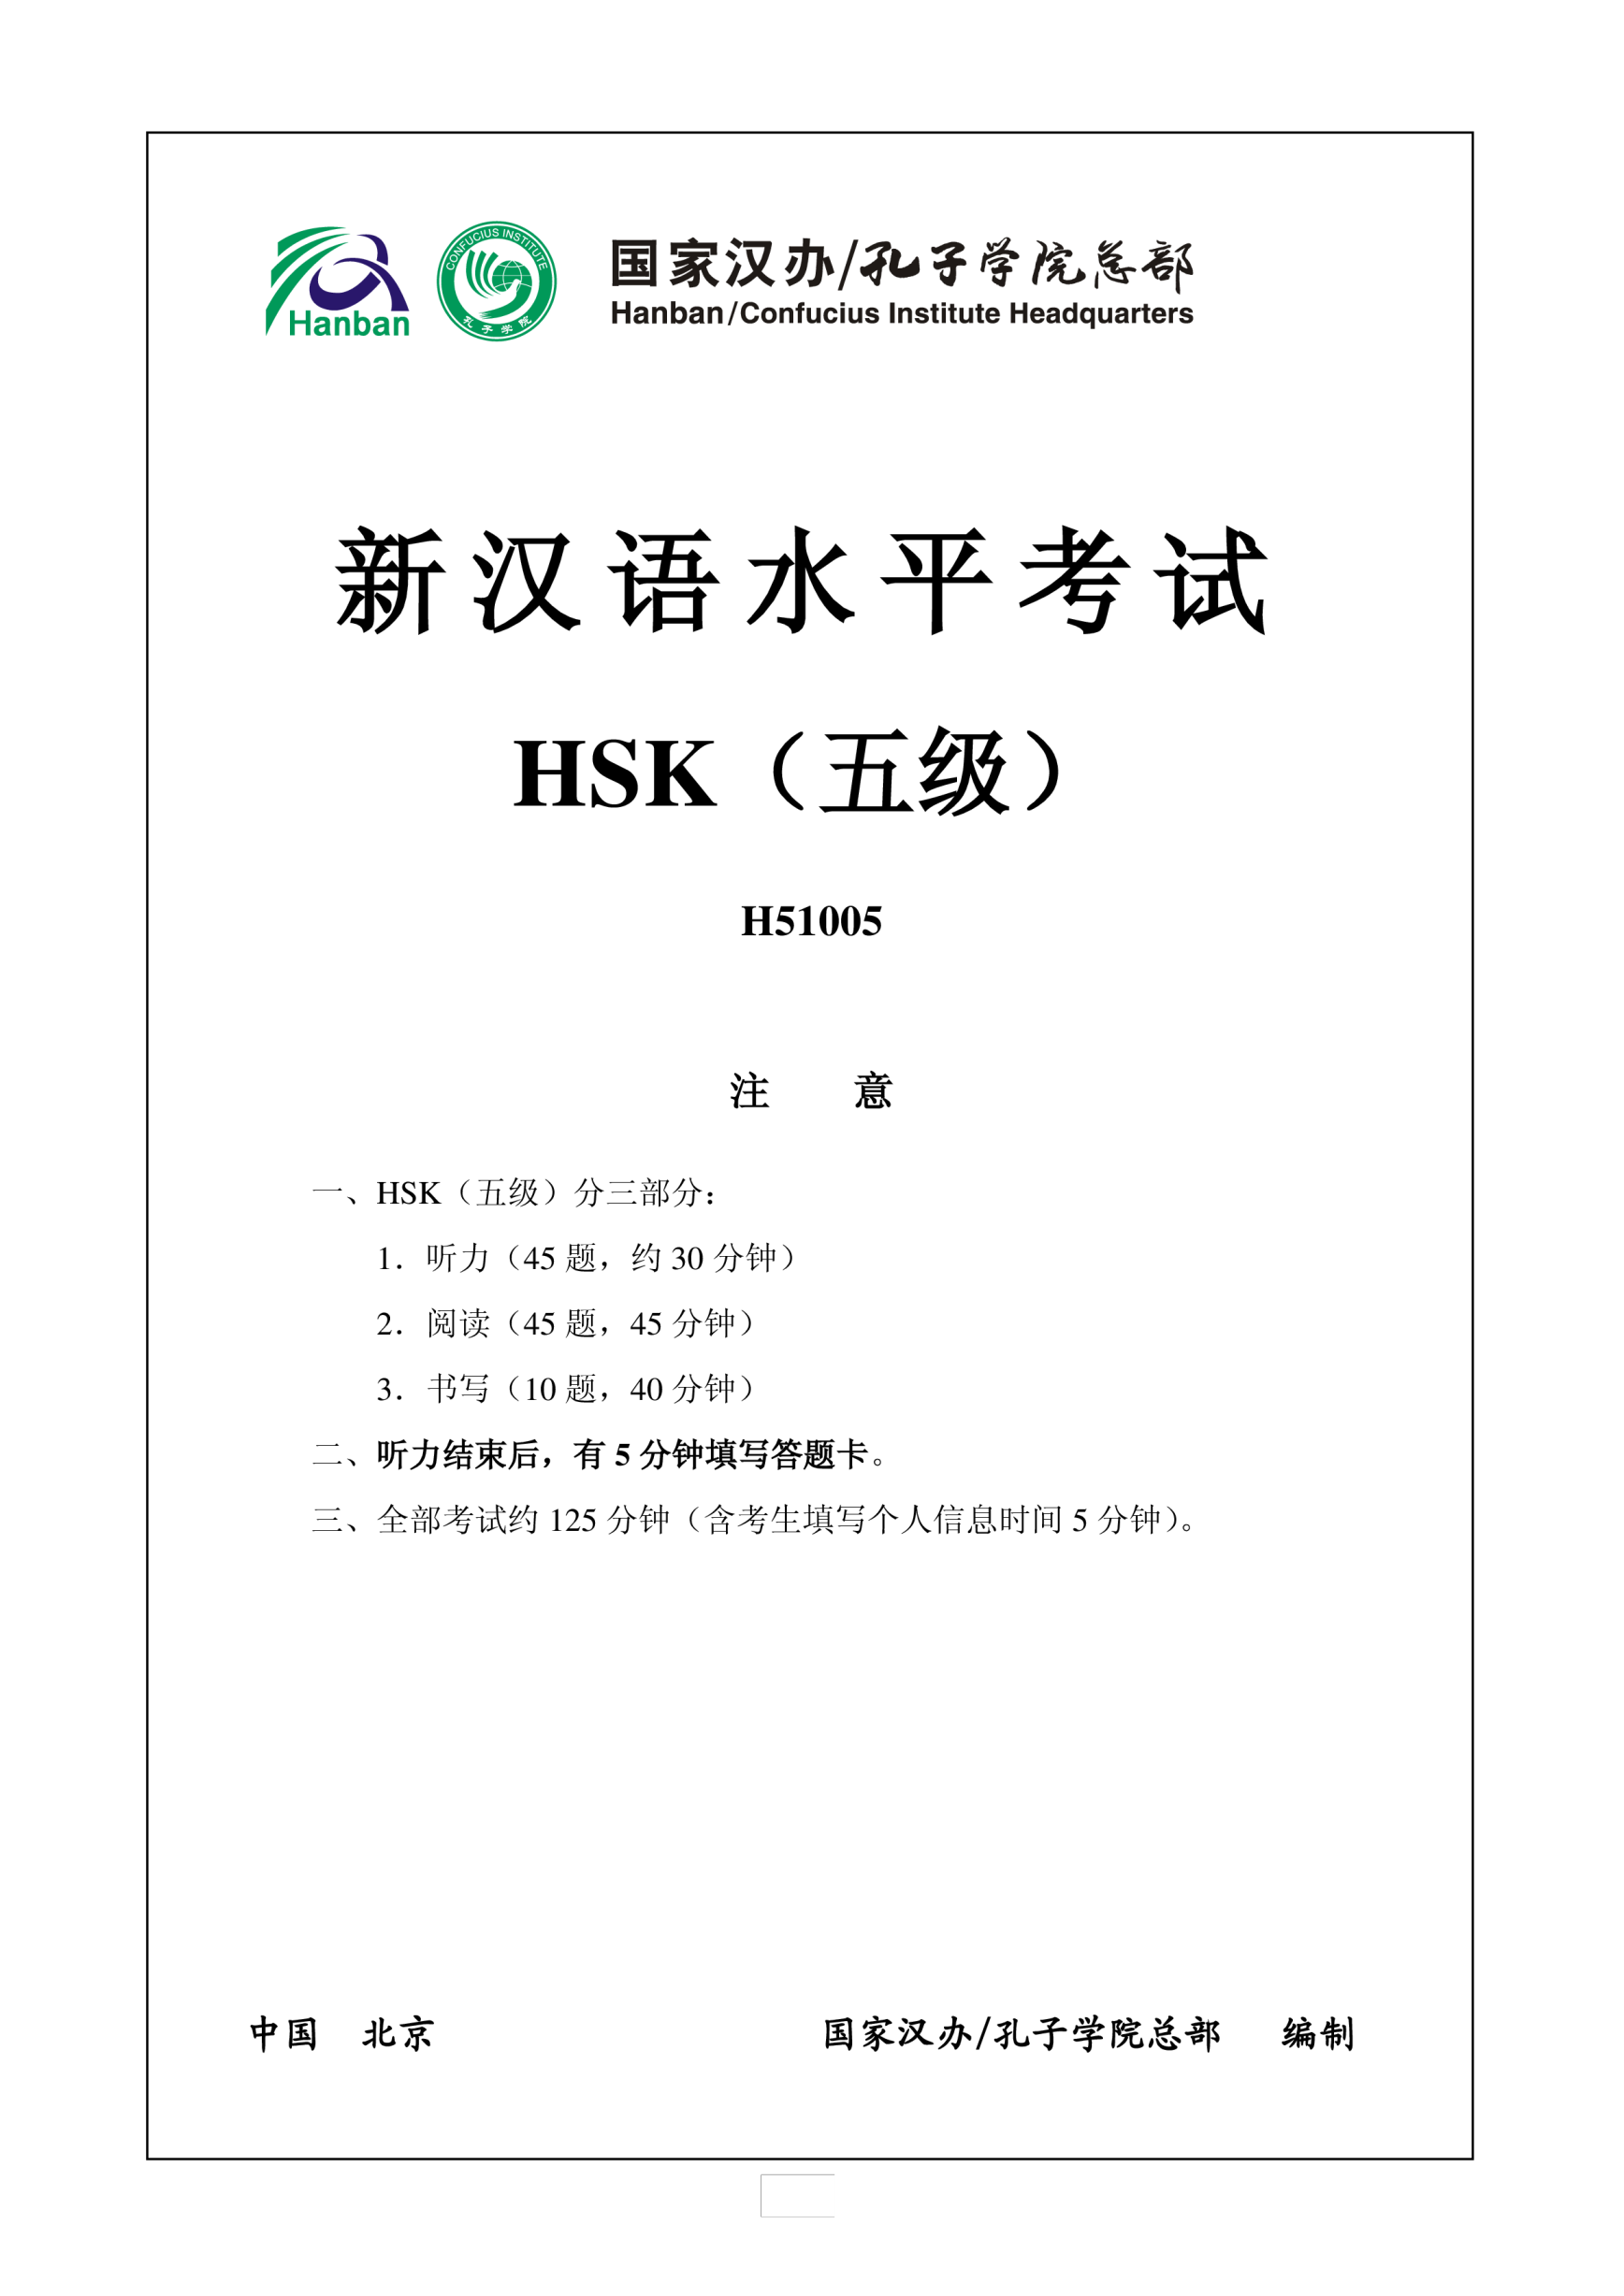 template preview imageHSK5 Chinese Exam incl Audio and Answers # H51005